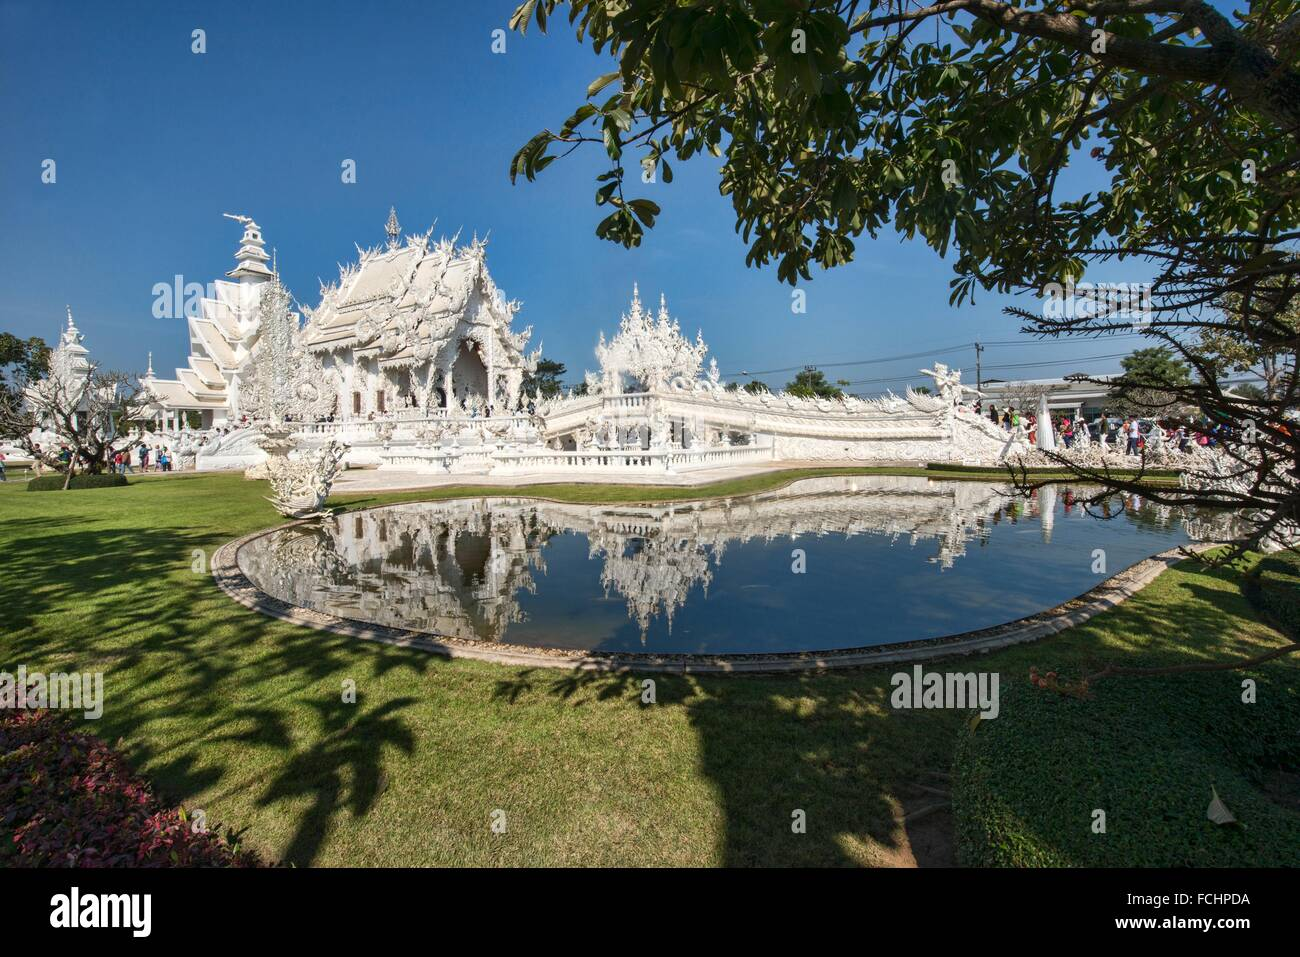 The gleaming white temple Wat Rong Khun in Chiang Rai, Thailand. - Stock Image